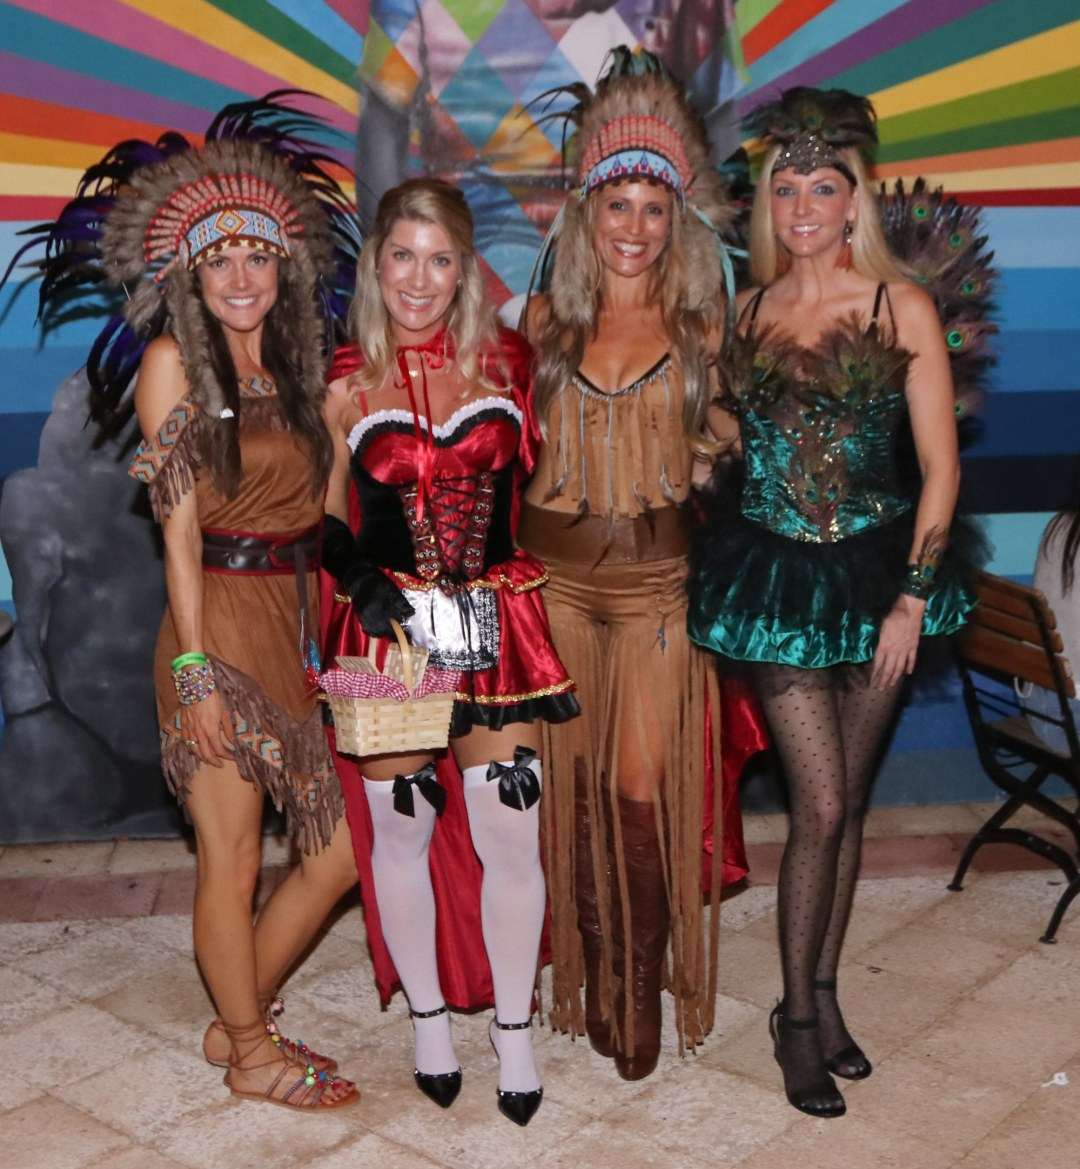 Two Native Americans, a Peacock and Red Riding Hood at Moonfest 2019 (photo by: Mike Jalches)